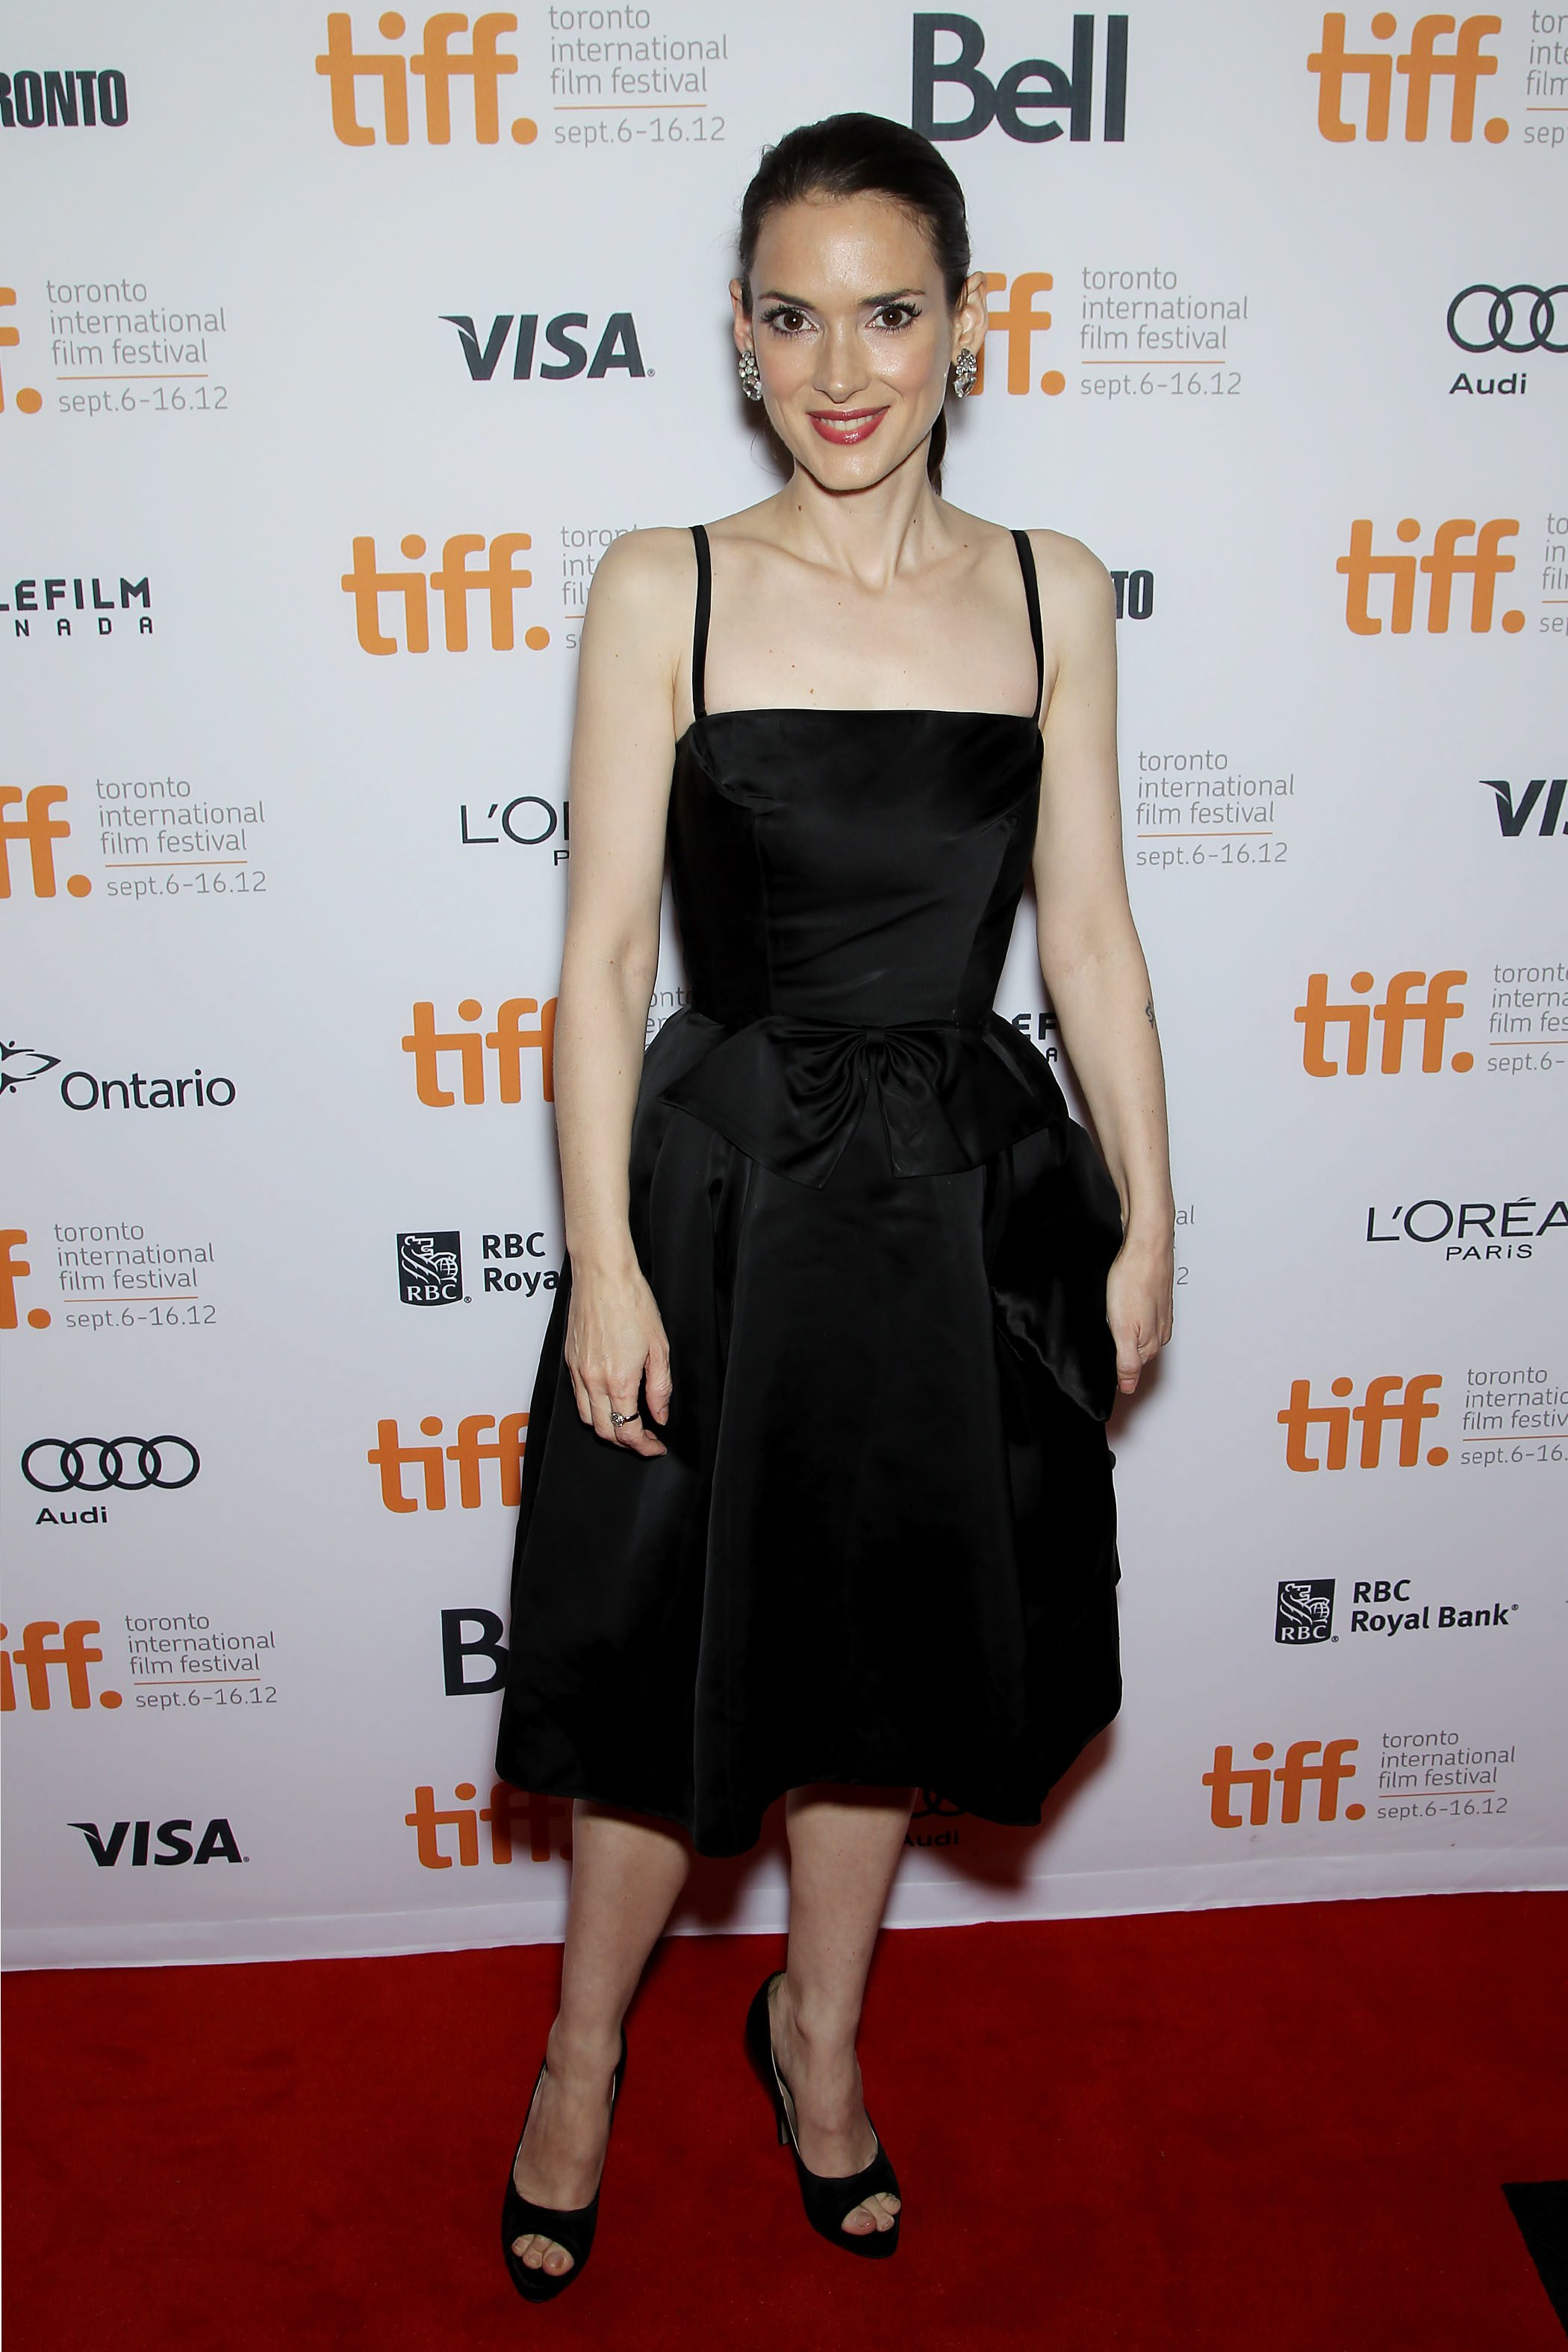 "Winona Ryder attends the premiere for ""The Iceman"" at The Princess of Wales Theatre during the Toronto International Film Festival on Monday Sept. 10, 2012, in Toronto. (AP Photo/Starpix, Marion Curtis) -PICTURED: Chris Evans -PHOTO by: Marion Curtis/StarPix -FILENAME: MC590722.JPG -LOCATION: Princess of Wales Theatre, Toronto Startraks Photo New York, NY For licensing please call 212-414-9464 or emailToronto, ON, Canada - 09/10/2012 - ""The Iceman"" Photo Call - 2012 Toronto International Film Festival -PICTURED: Chris Evans -PHOTO by: Marion Curtis/StarPix -FILENAME: MC590722.JPG -LOCATION: Princess of Wales Theatre, Toronto Startraks Photo New York, NY For licensing please call 212-414-9464 or email"